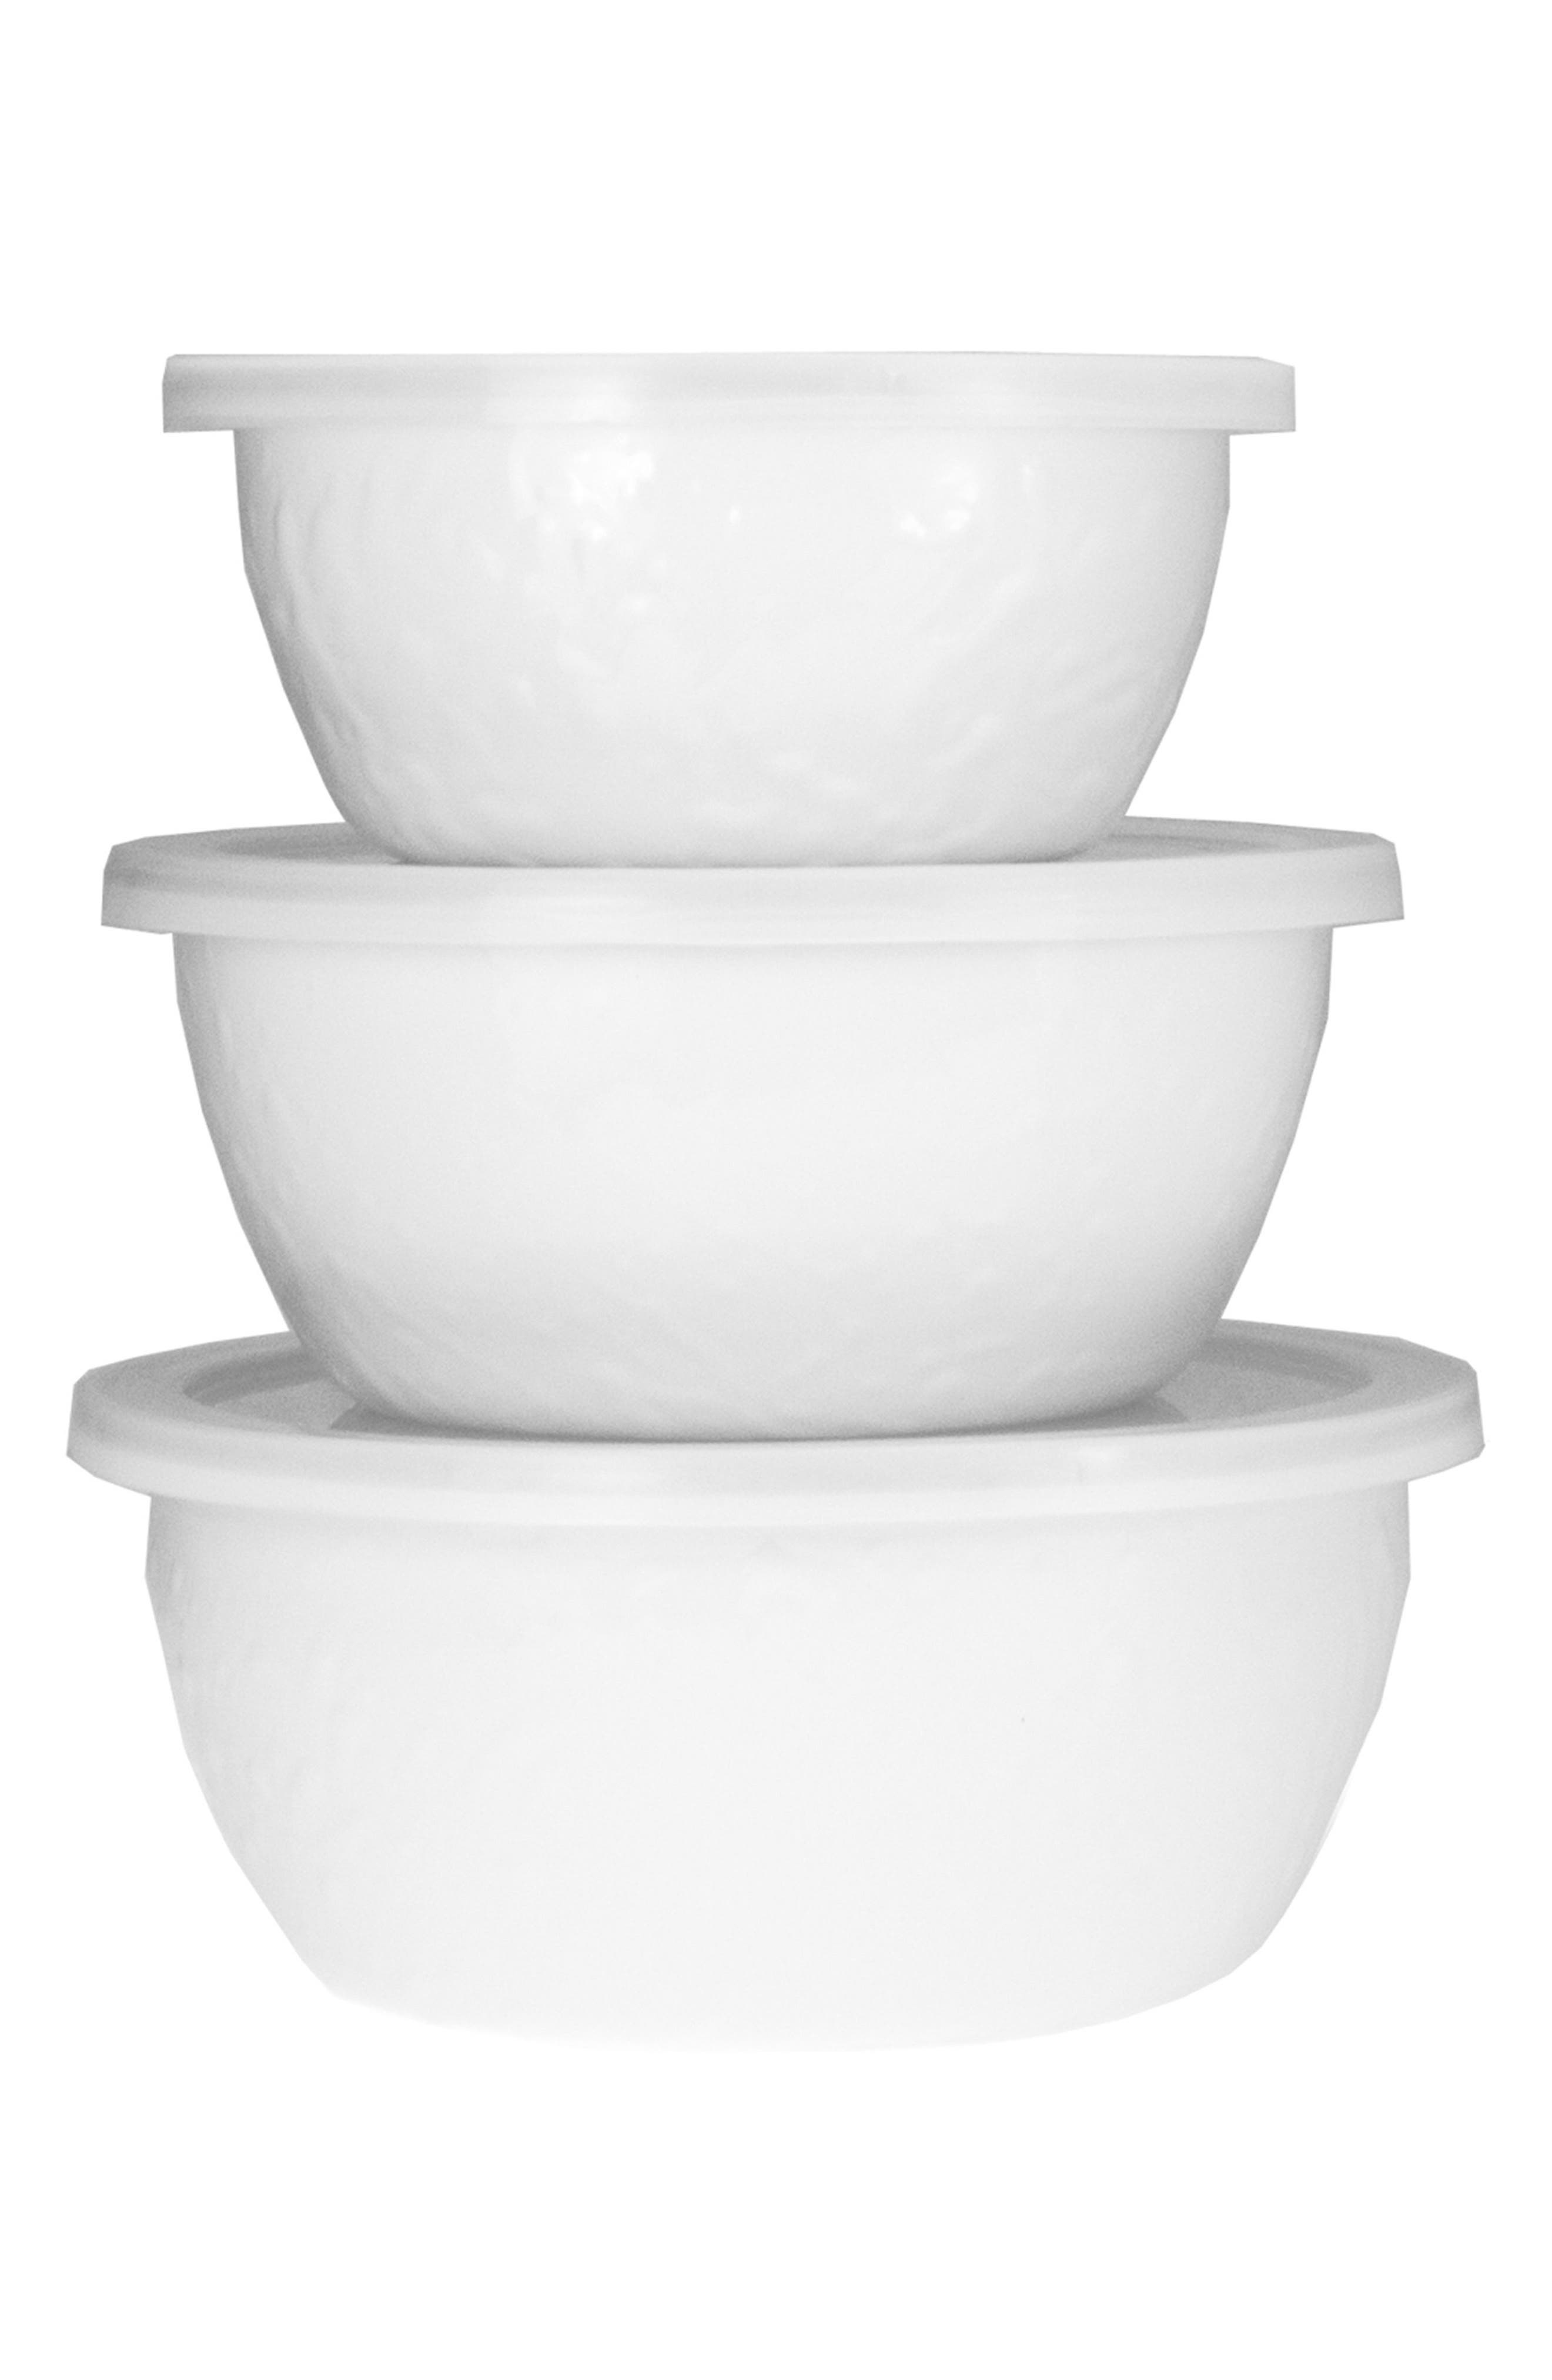 Set of 3 Nesting Bowls,                         Main,                         color, SOLID WHITE